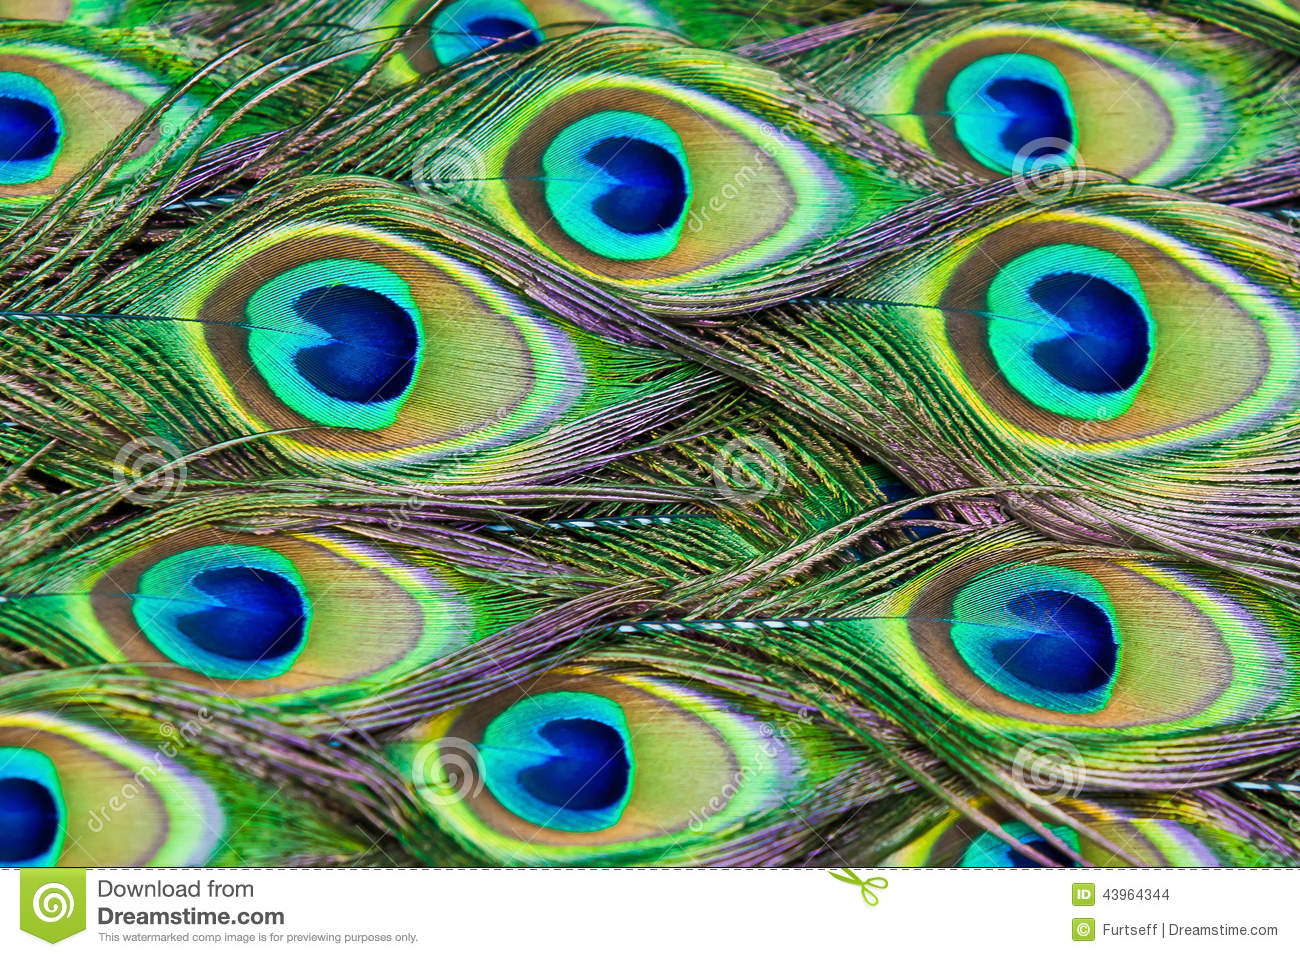 Peacock Feathers Stock Photo - Image: 12538290